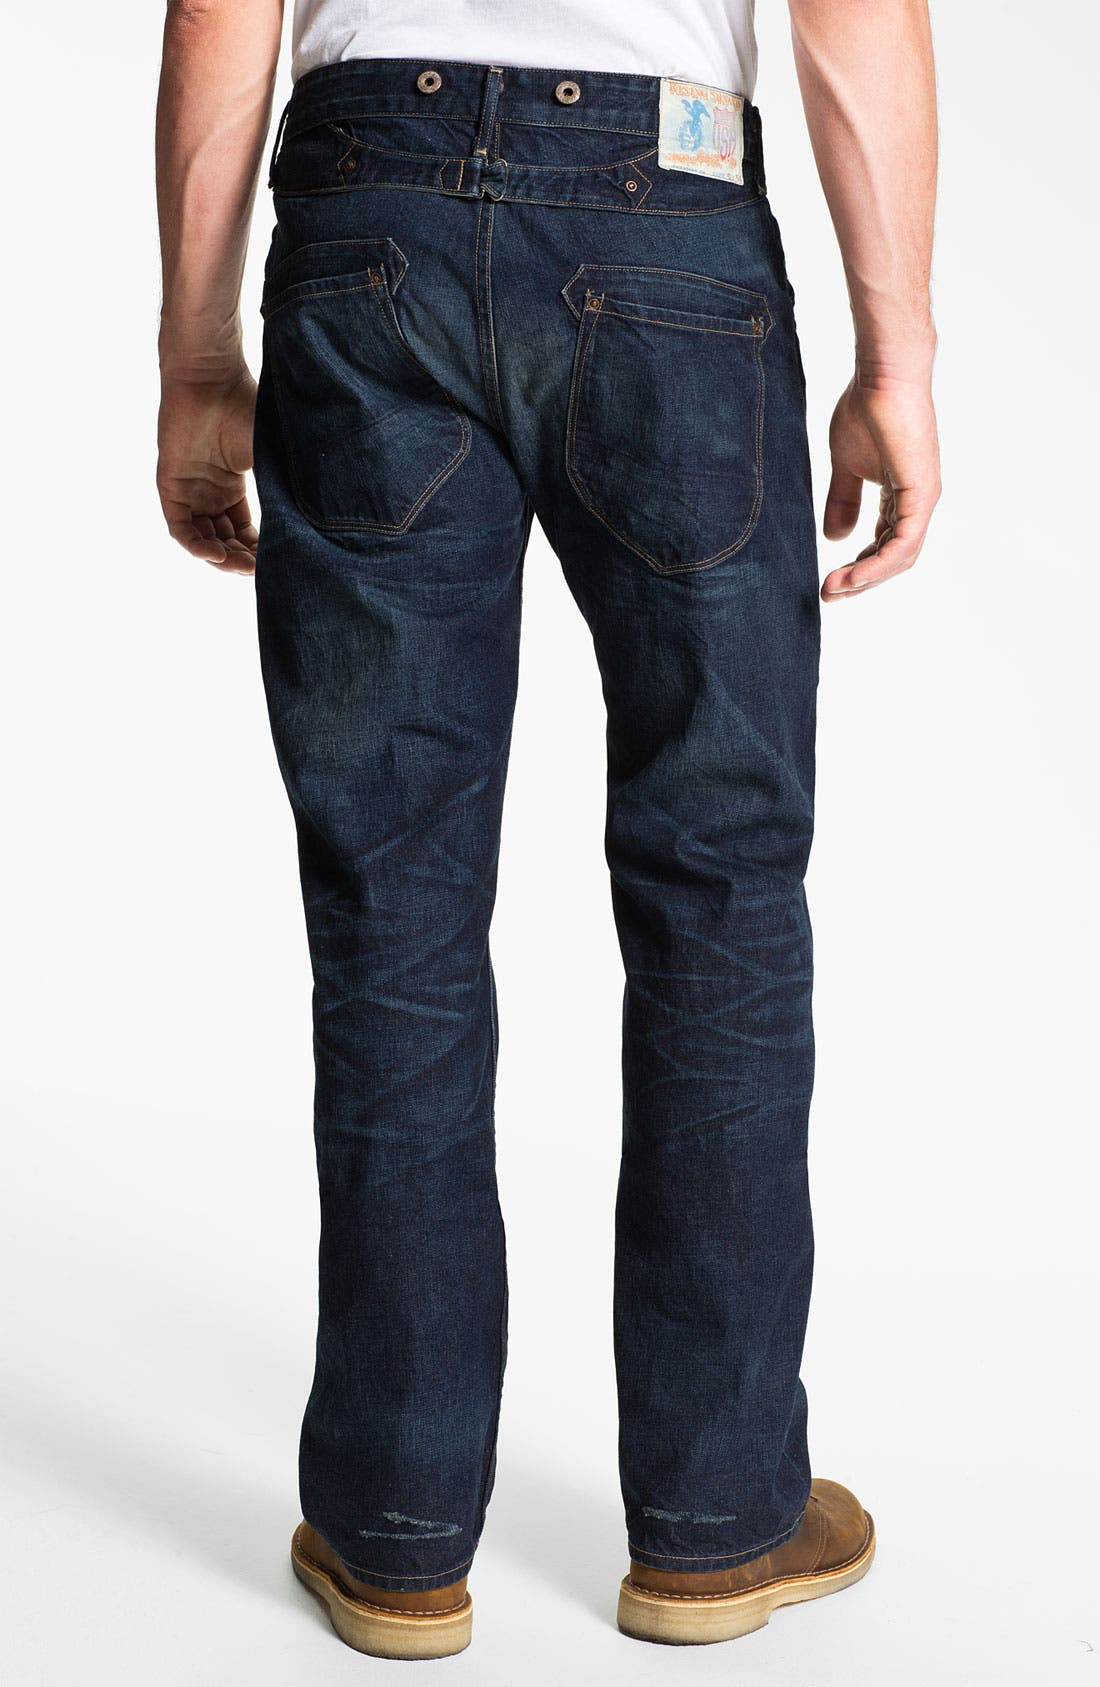 RISING SUN,                             'Blacksmith' Relaxed Straight Leg Jeans,                             Main thumbnail 1, color,                             401